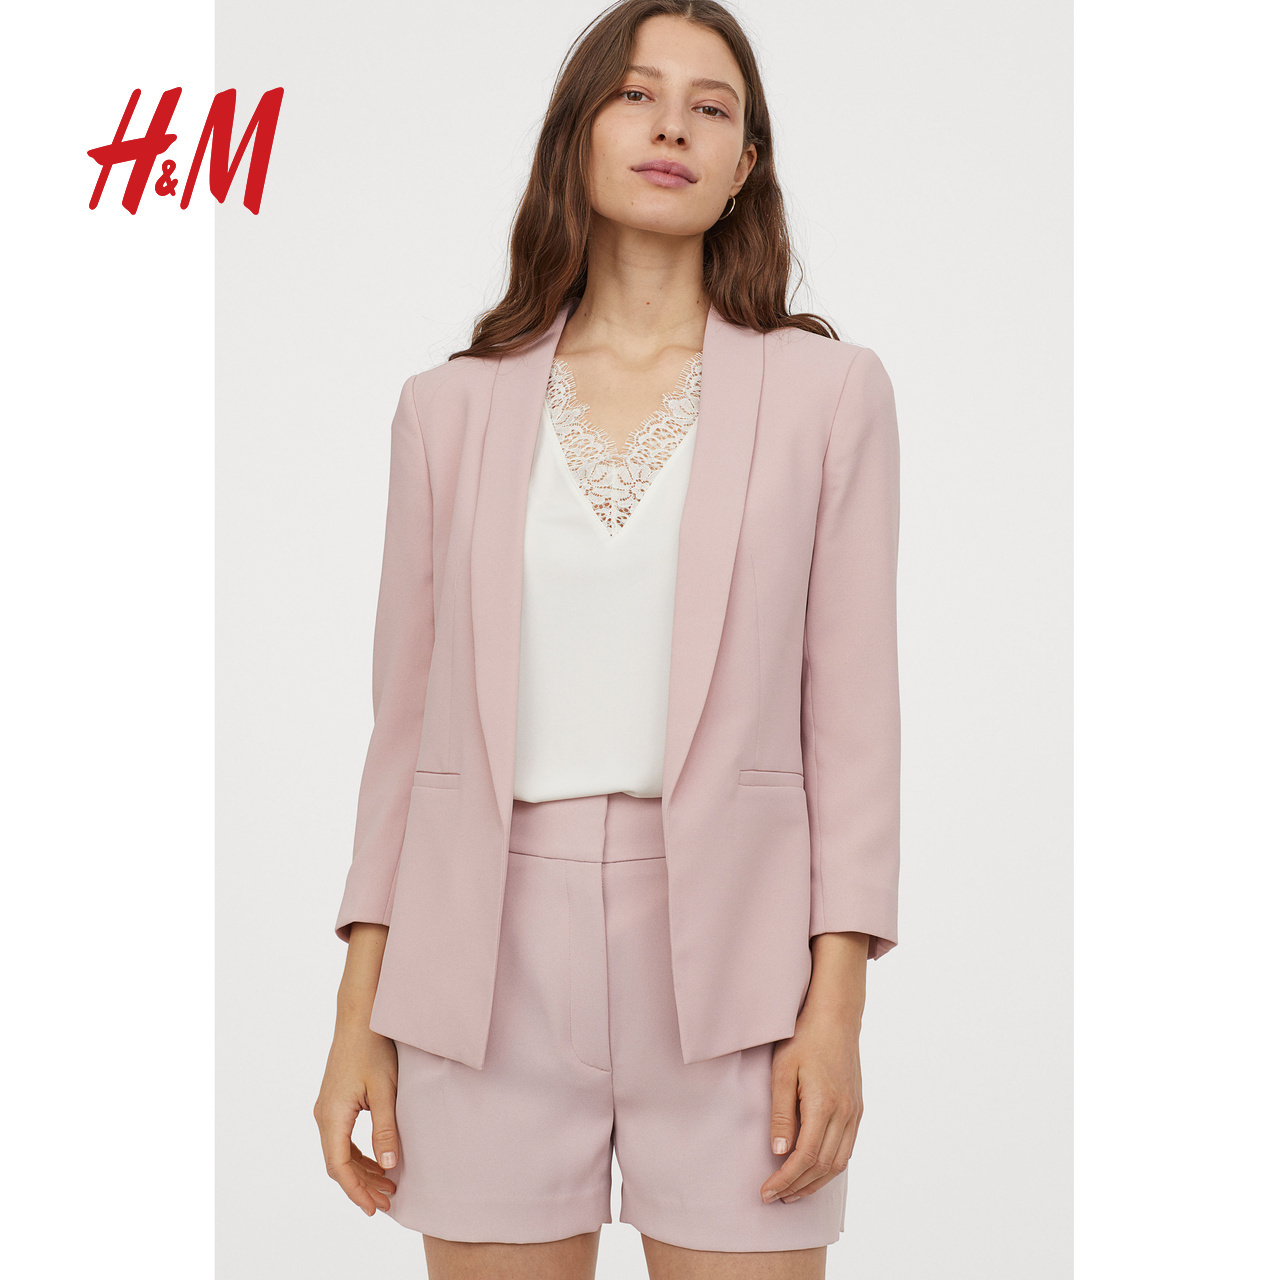 HM women's small suit outerwear women's 2020 spring dress leisure western style women's top professional dress 0728156